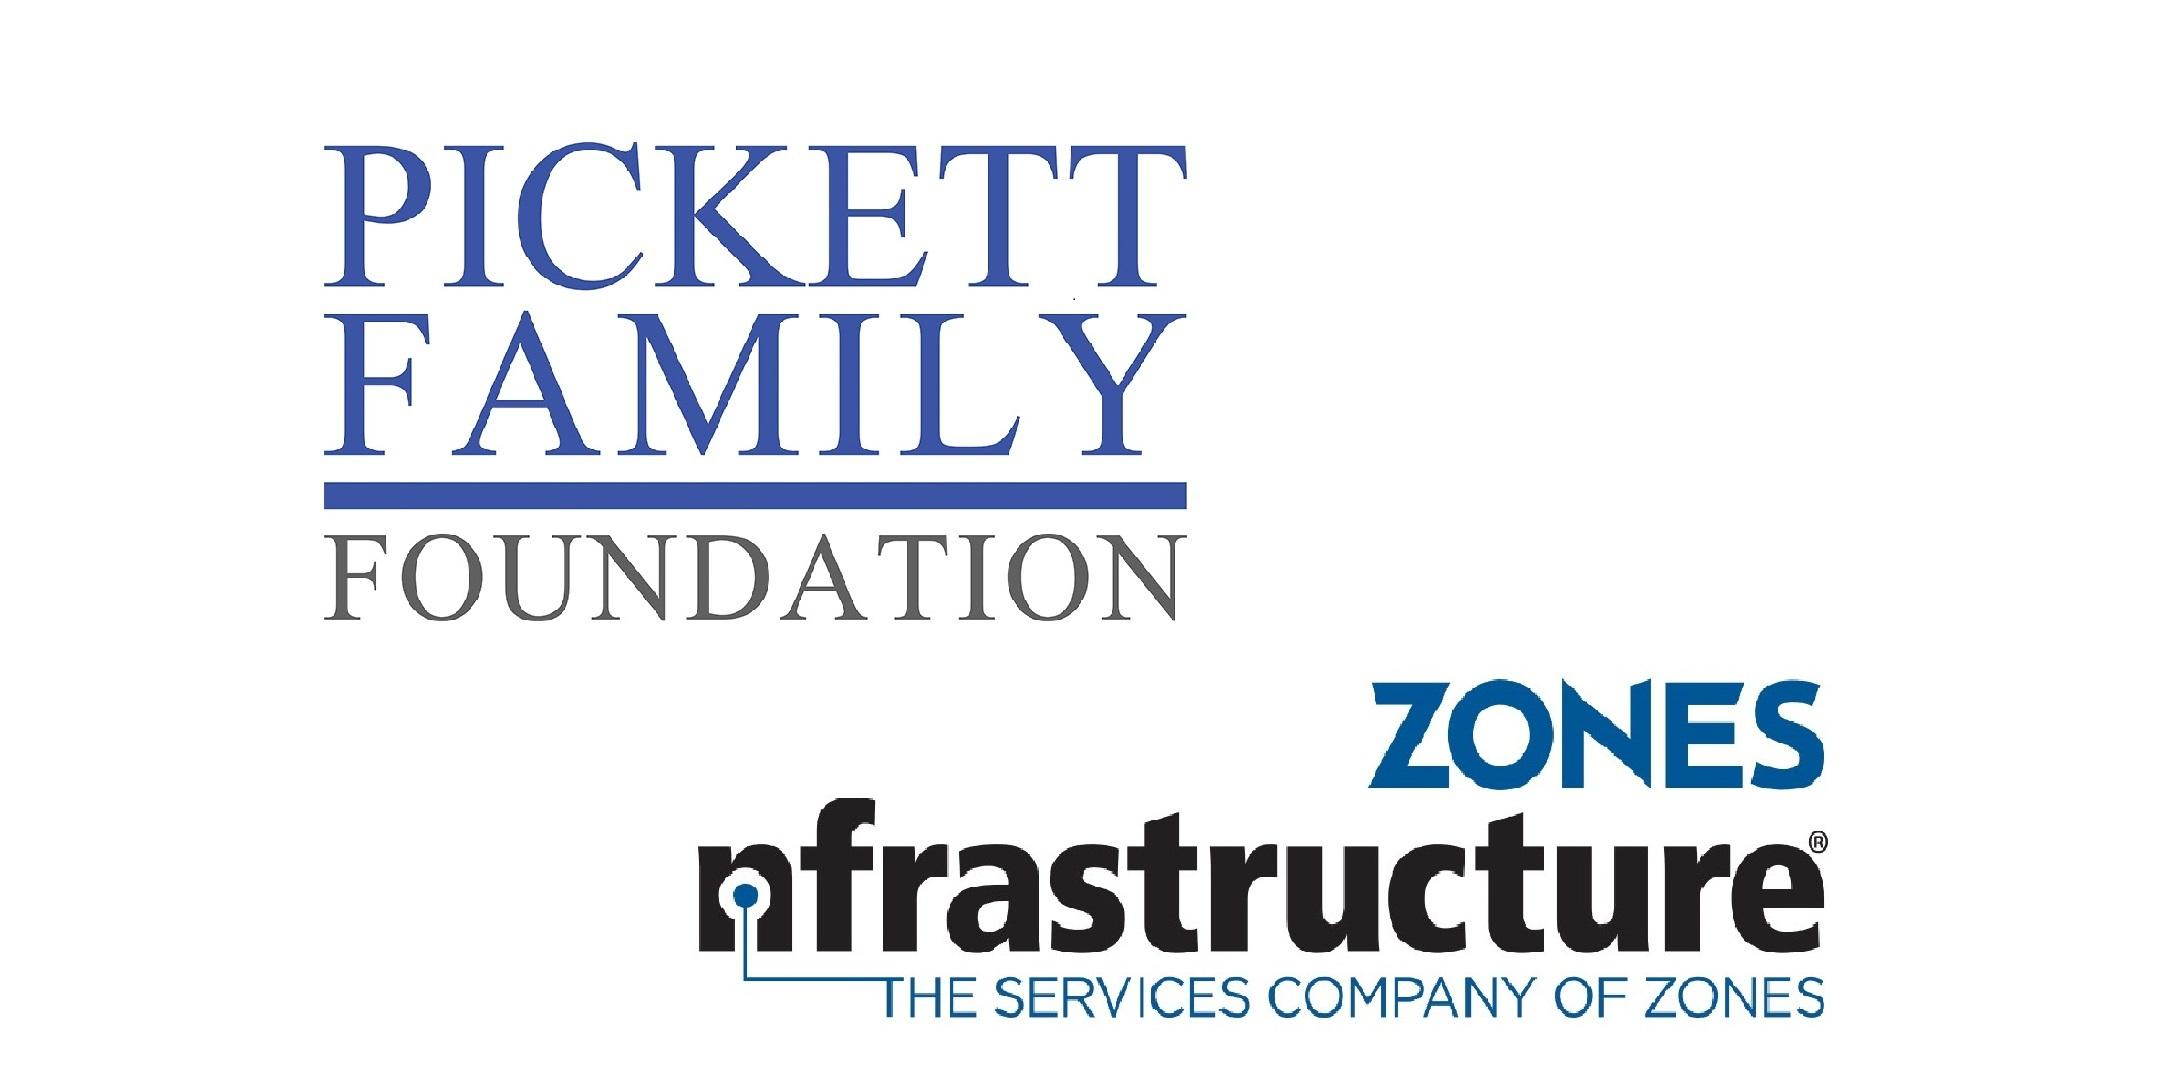 Pickett Family Foundation & Zones nfrastructure Golf Outing and Cocktail Reception 2019